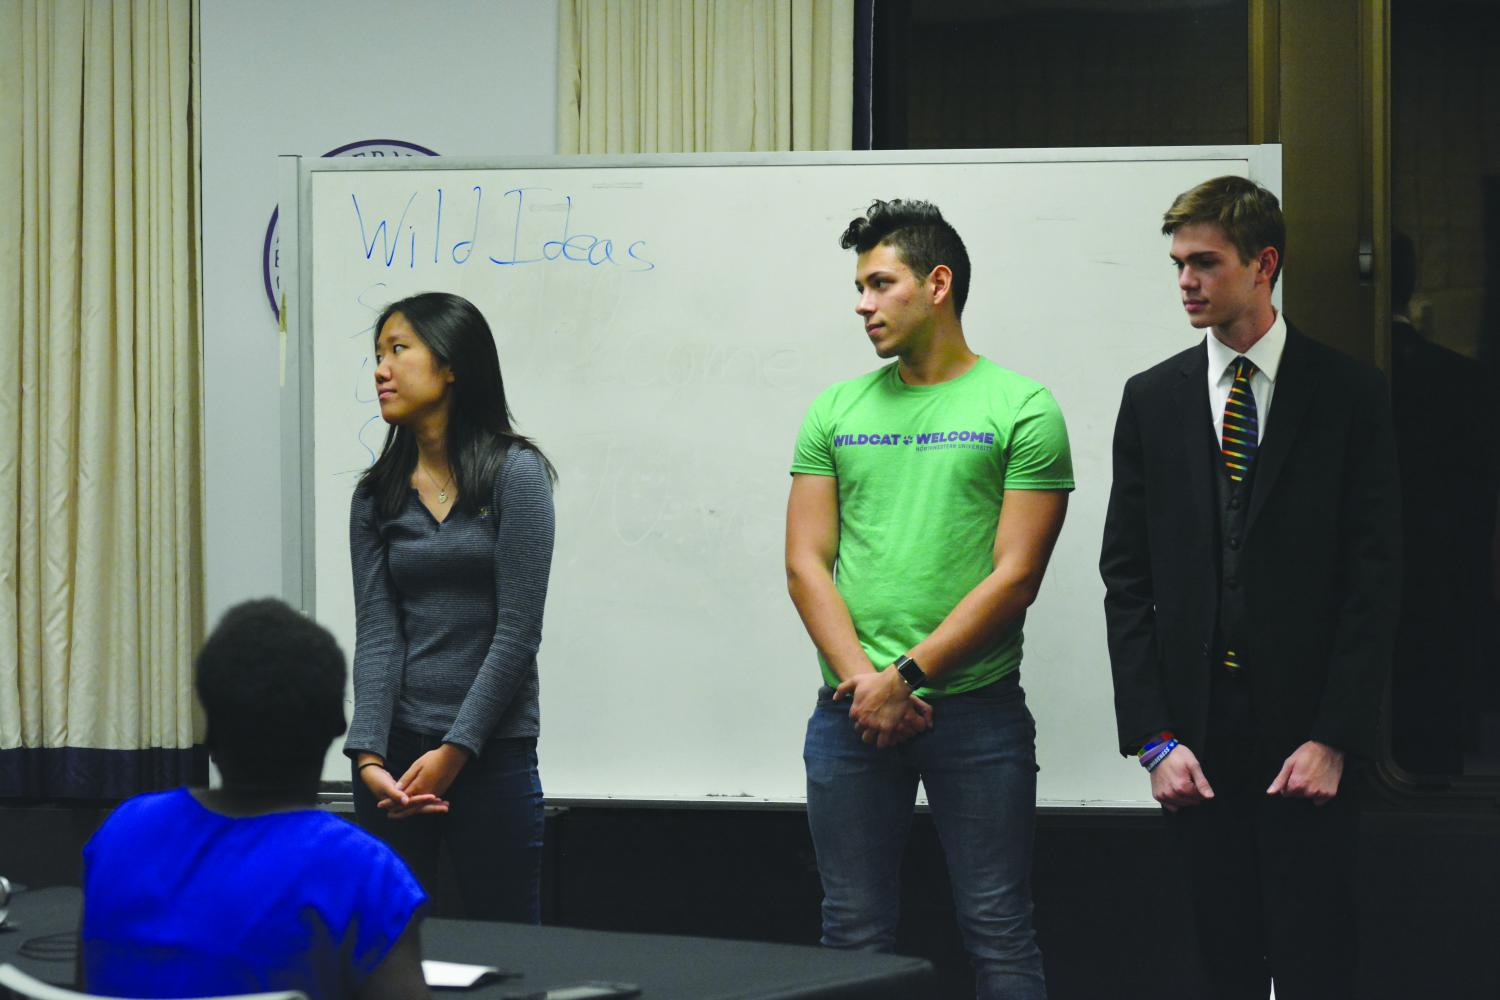 Leo Scheck (center) looks on during Associated Student Government Senate. The Communication sophomore was elected to the Wild Ideas committee at Wednesday's Senate.